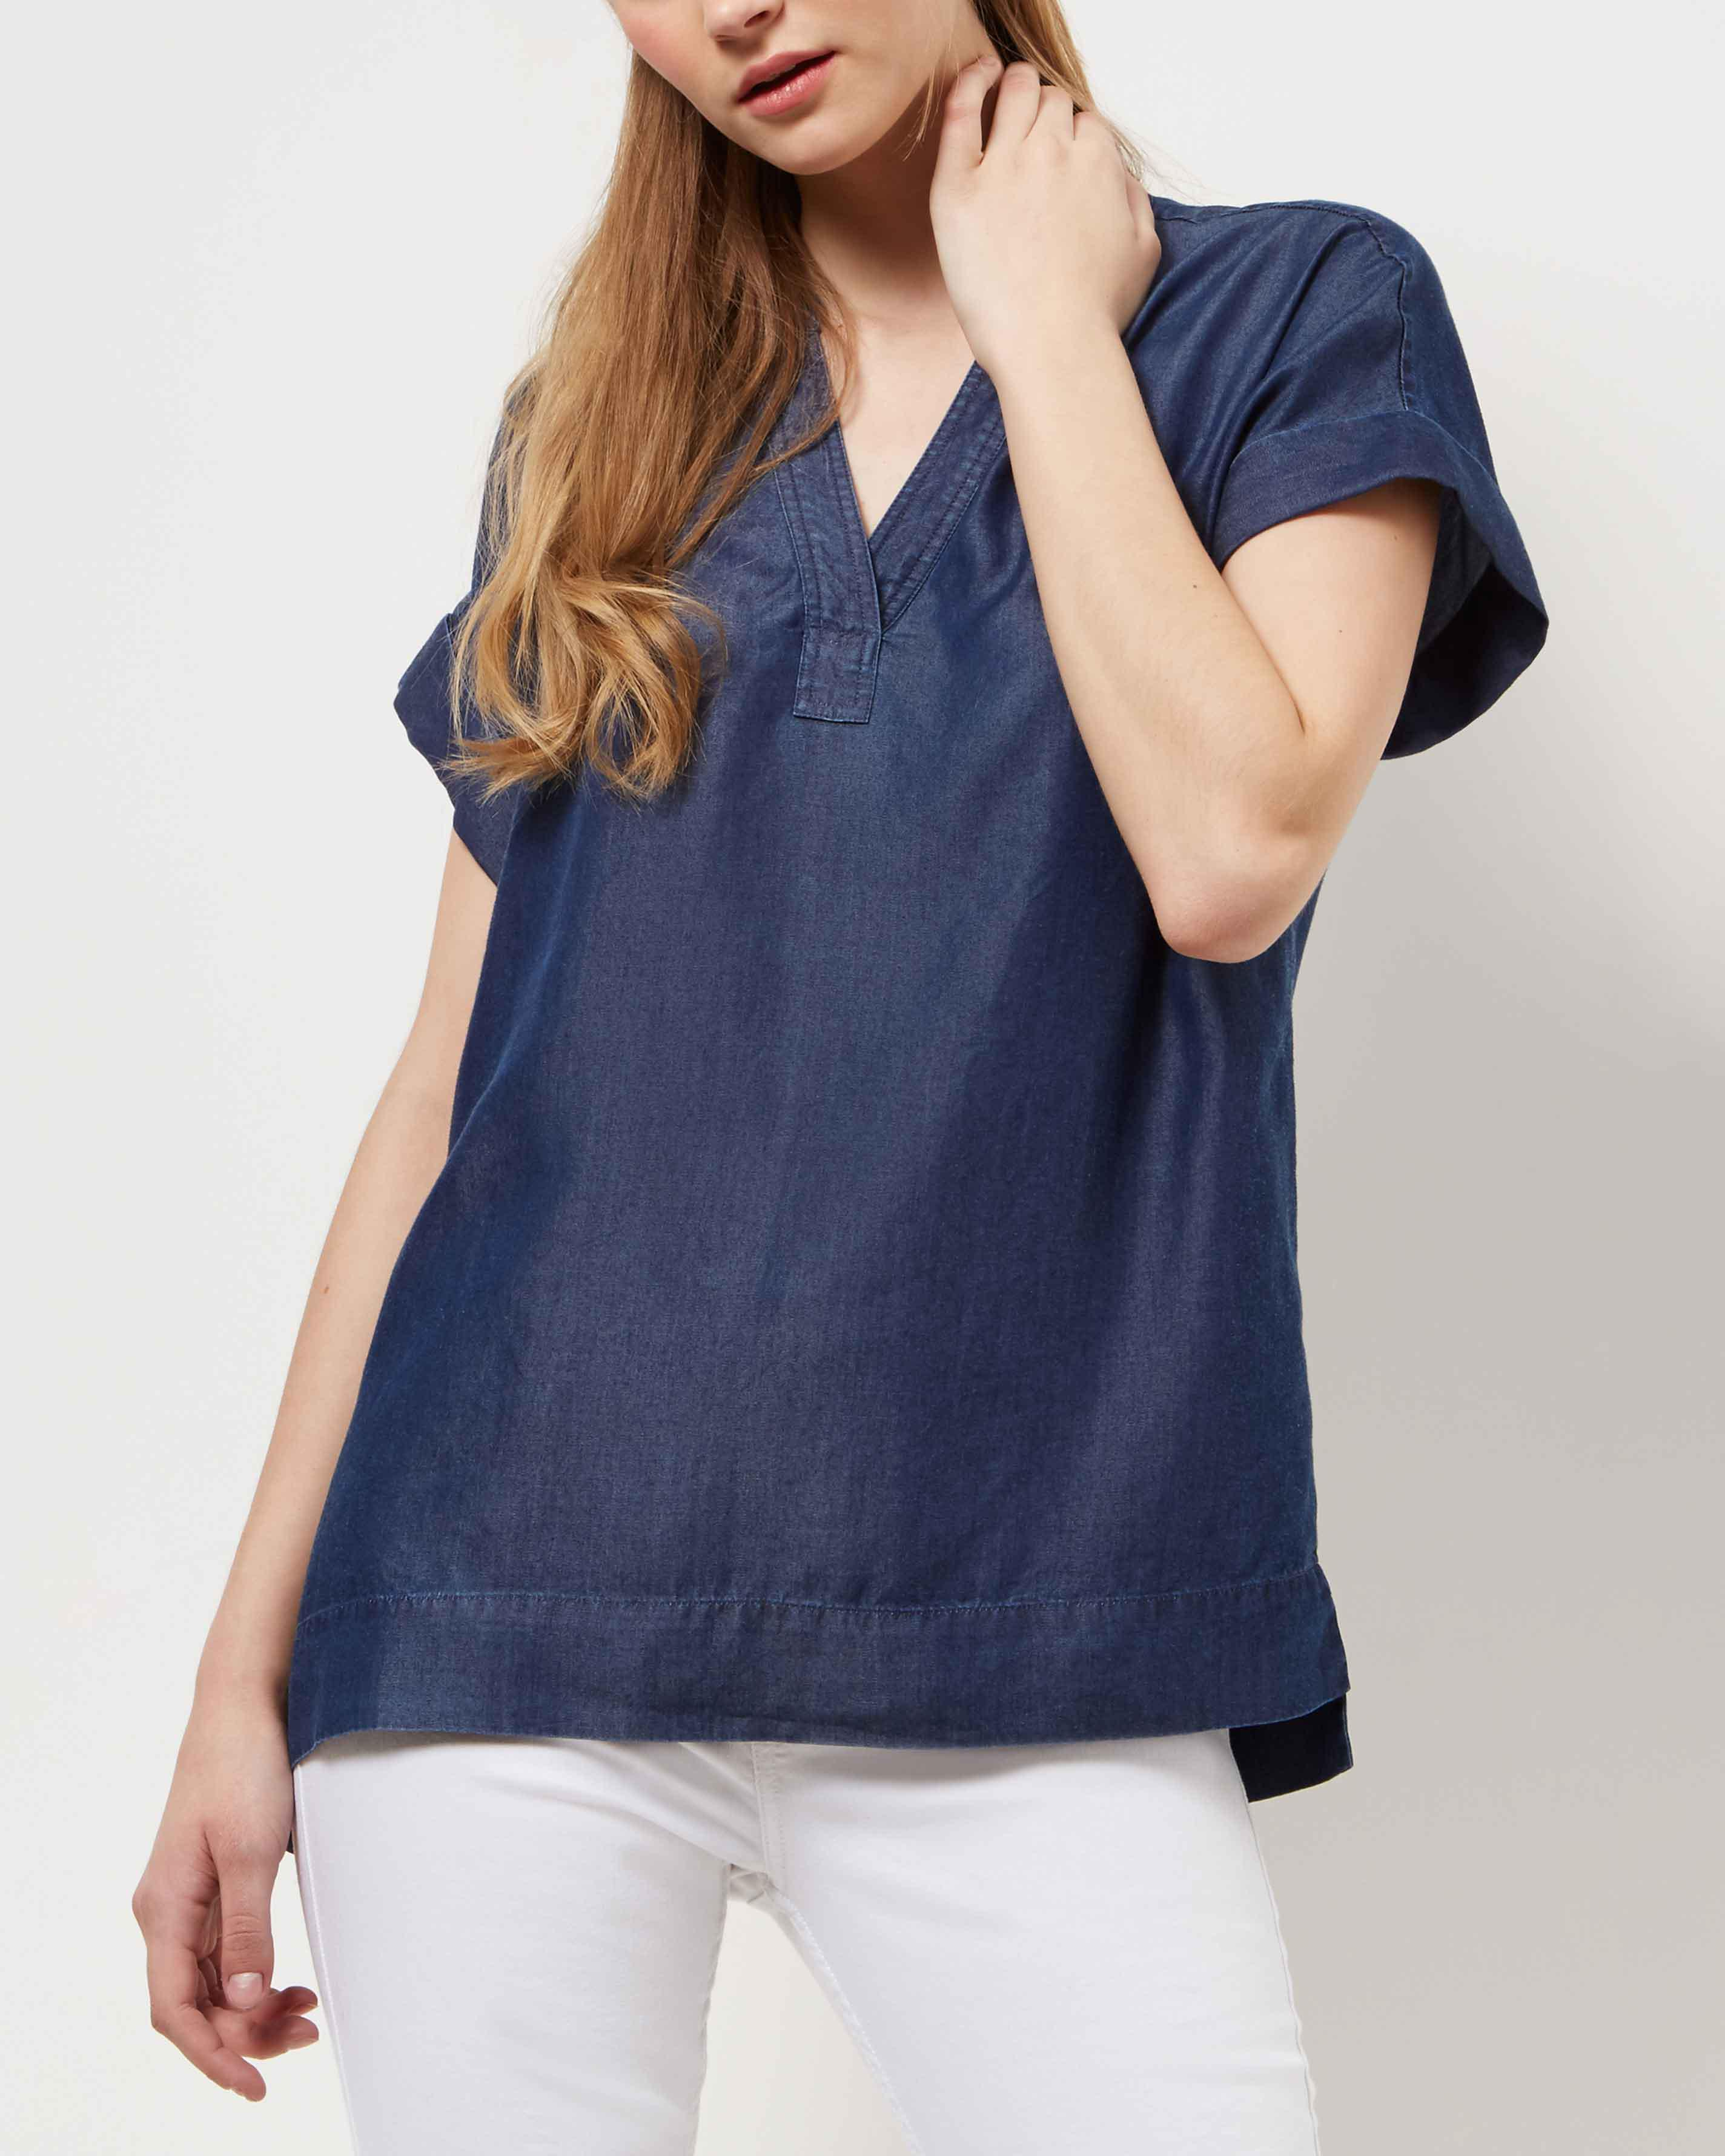 Lyst jaeger chambray t shirt in blue save 2 for Blue chambray shirt women s